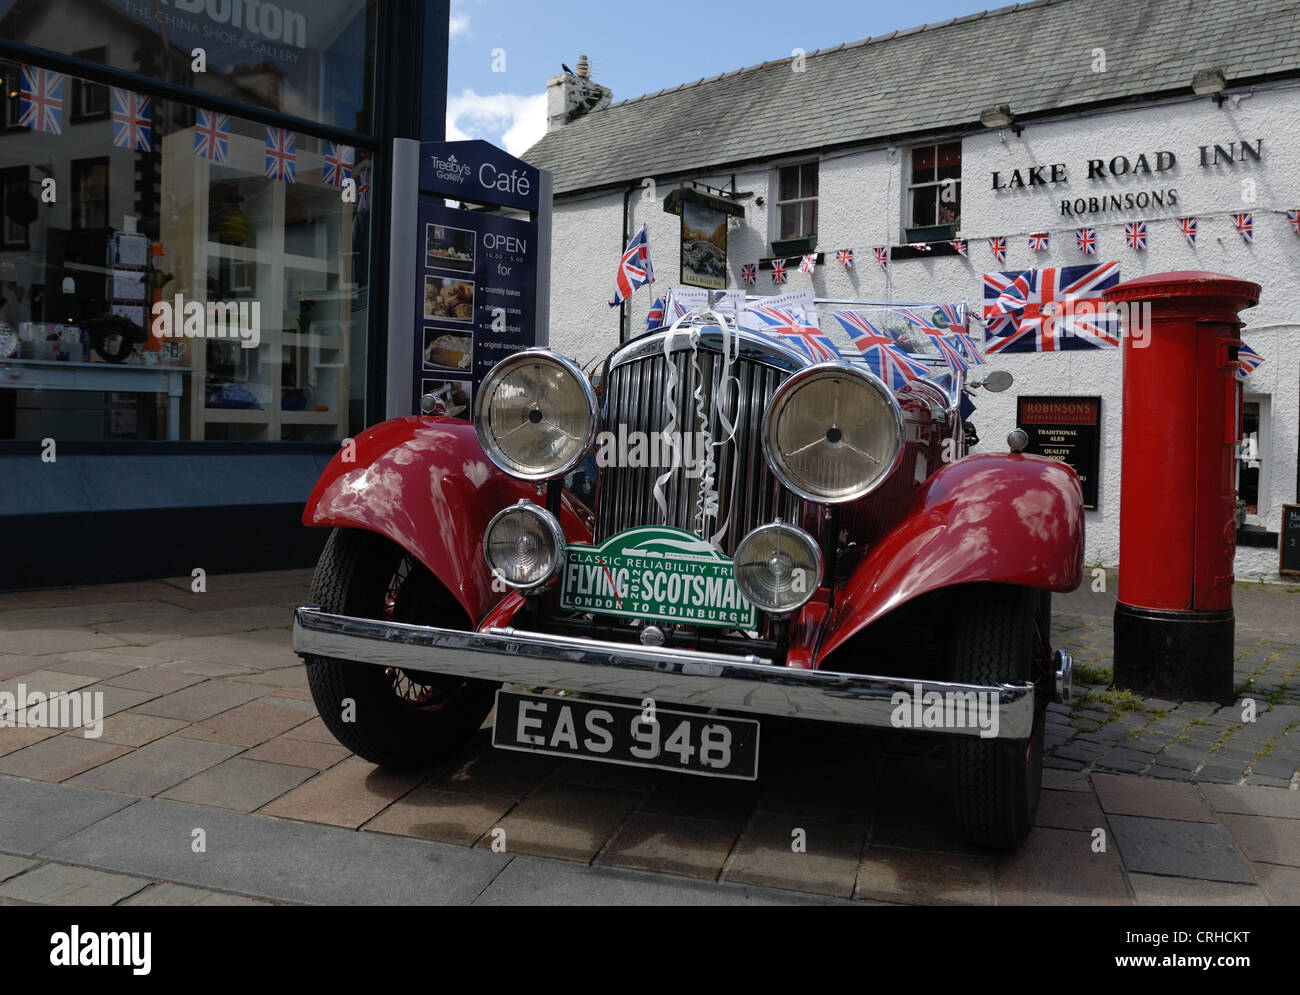 An Old Bentley motor car adorned with jubilee flags - Stock Image